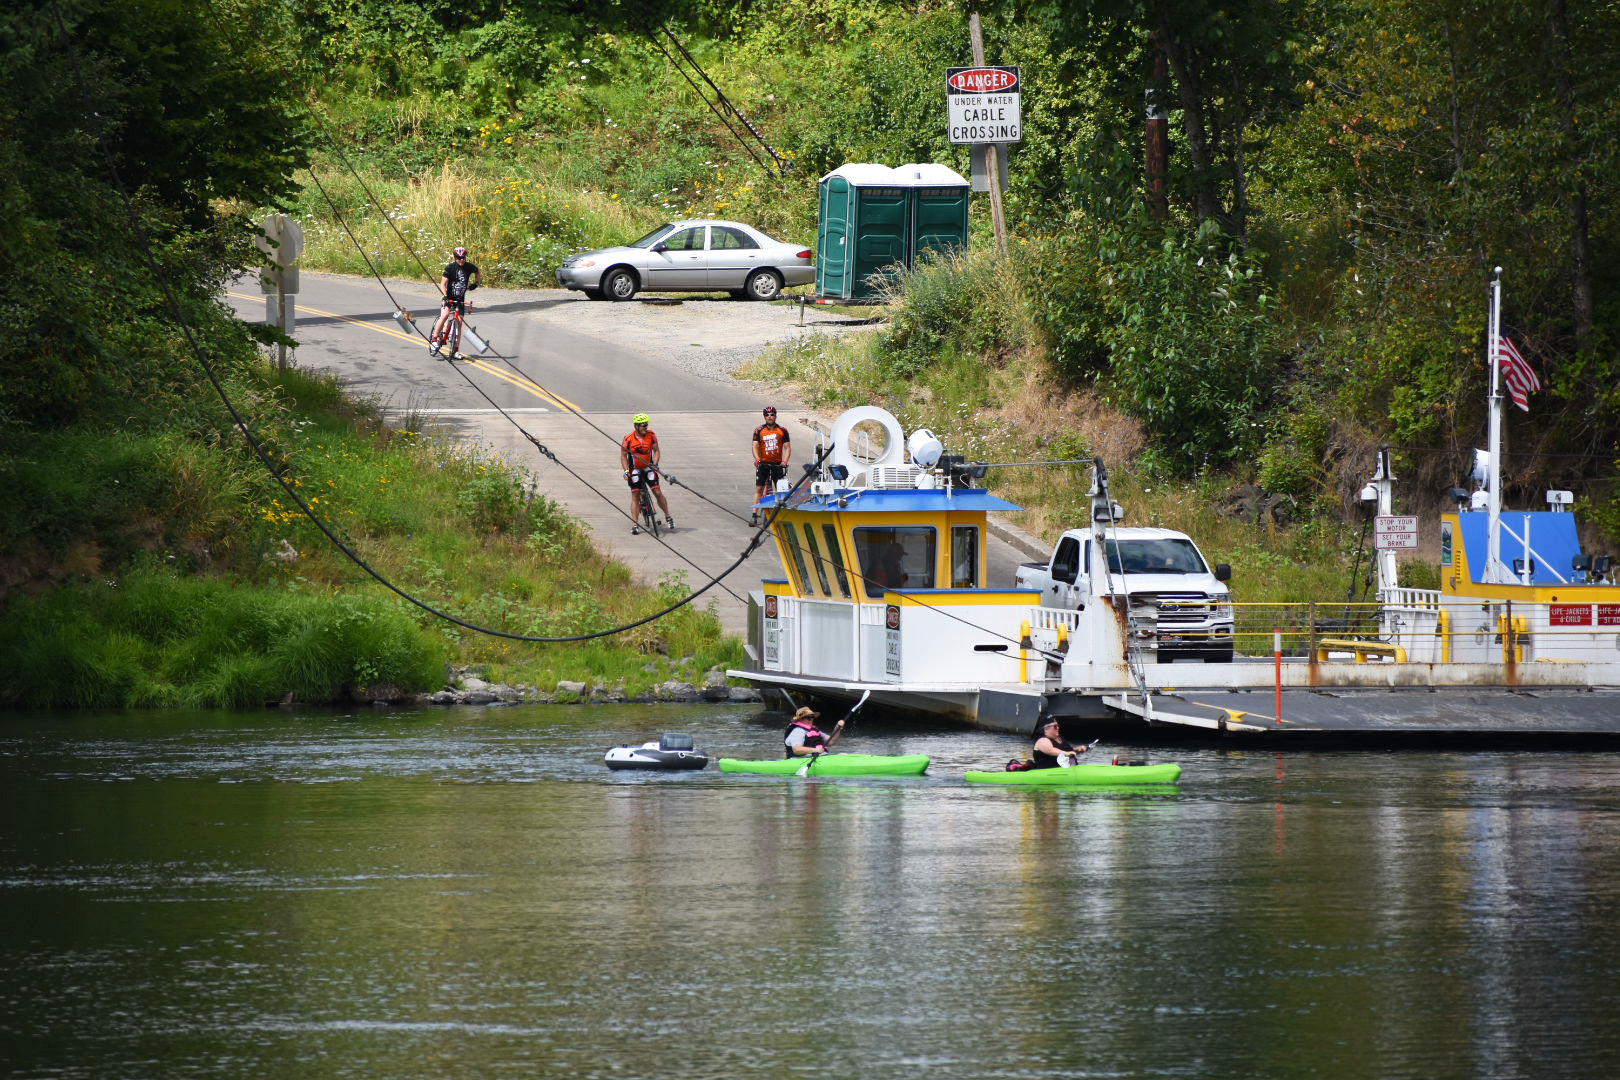 A river ferry with bicyclists waiting and kayaks on the water